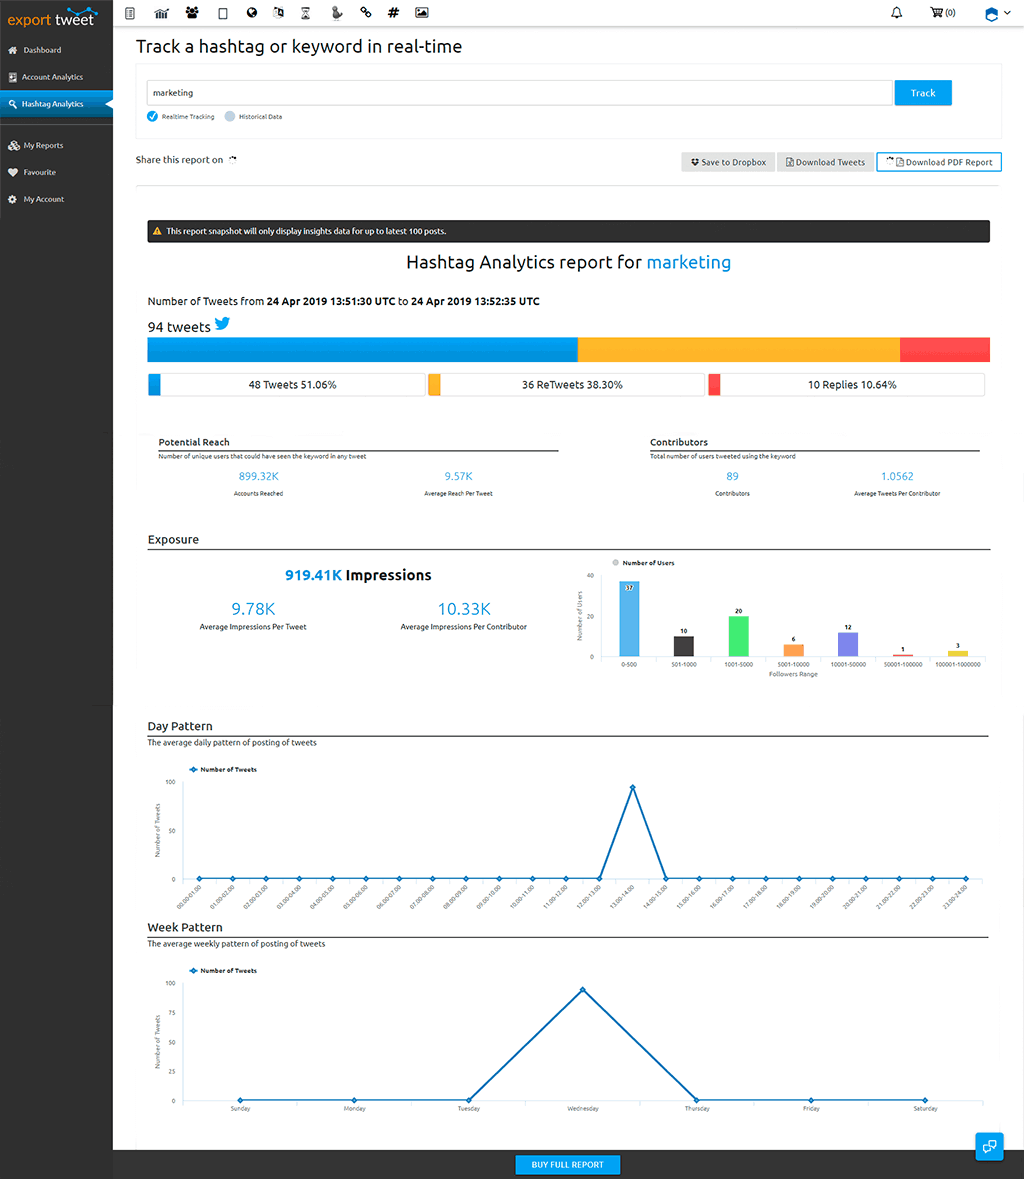 Hashtag Analytics Report - ExportTweet